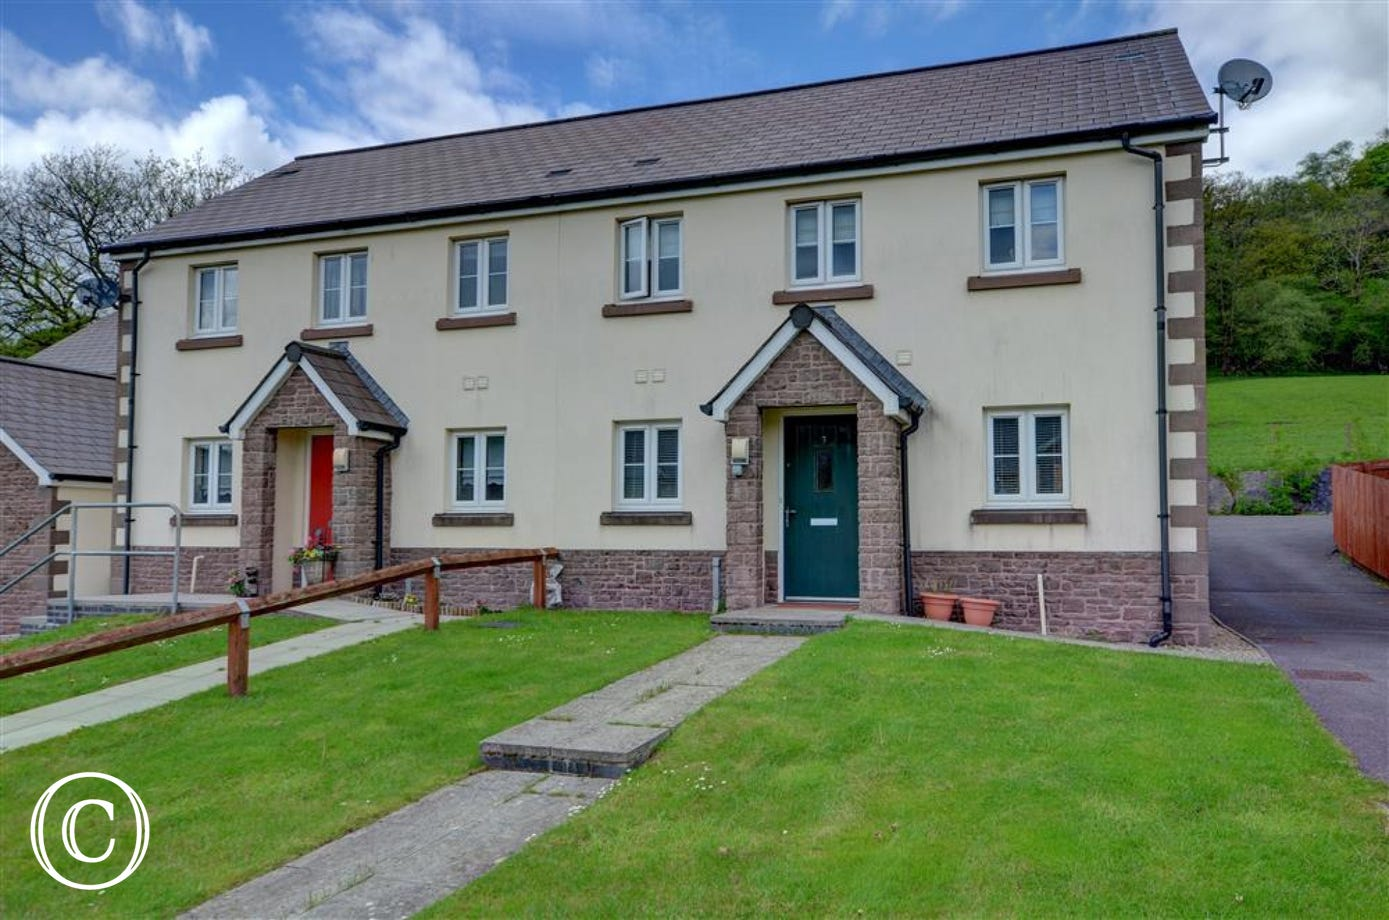 7 Maes y Cribarth is a contemporary semi-detached house on the southern edge of Brecon Beacons National Park